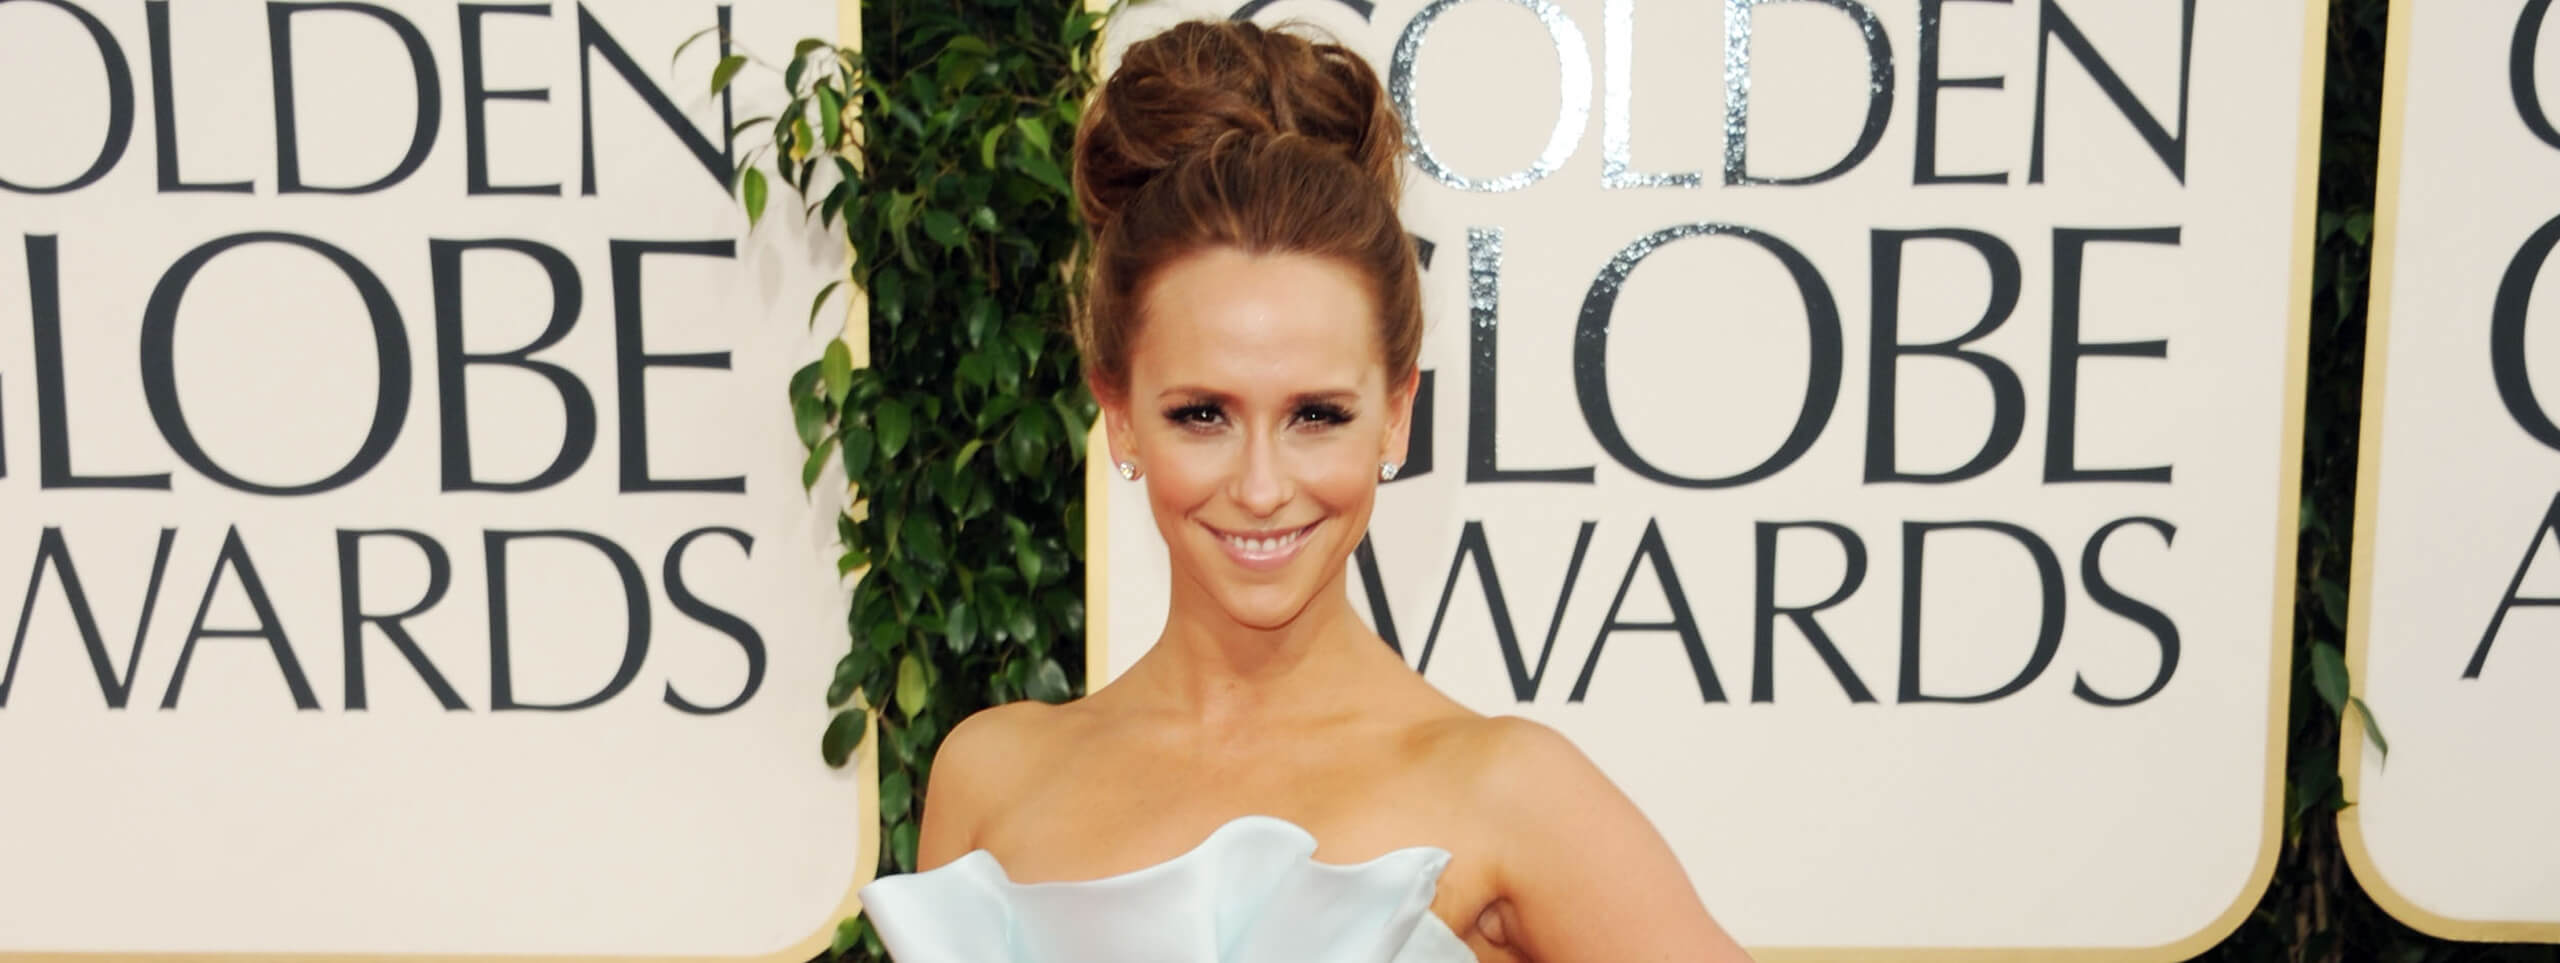 Jennifer Love Hewitt with classic chignon hairstyle